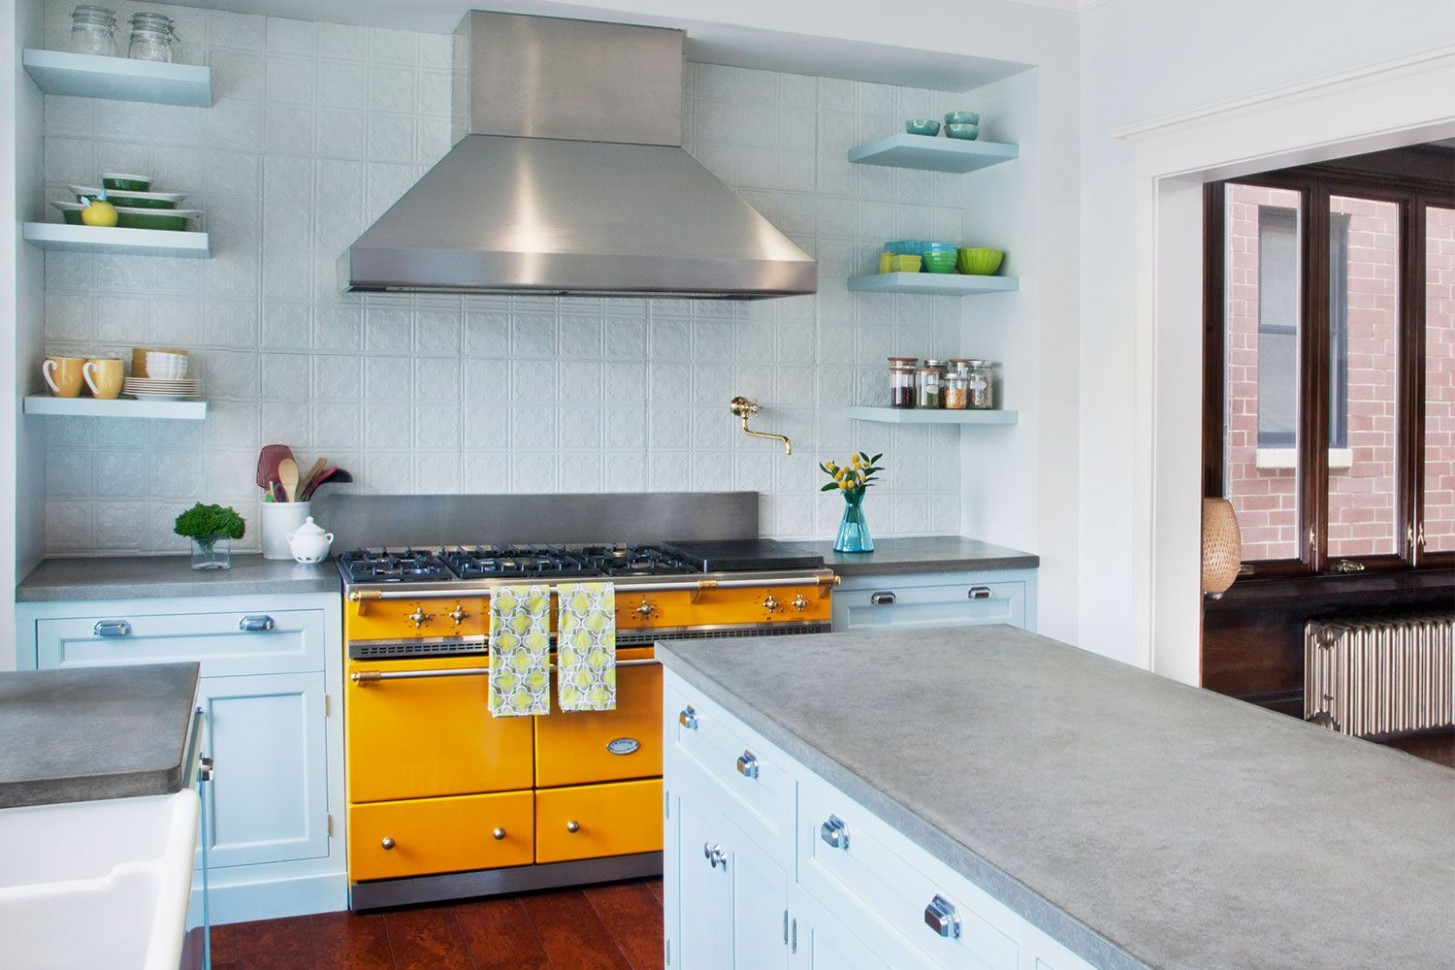 11 Blue Kitchen Ideas - Lovely Ways to Use Blue Cabinets and Decor  - Yellow Kitchen With Blue Cabinets